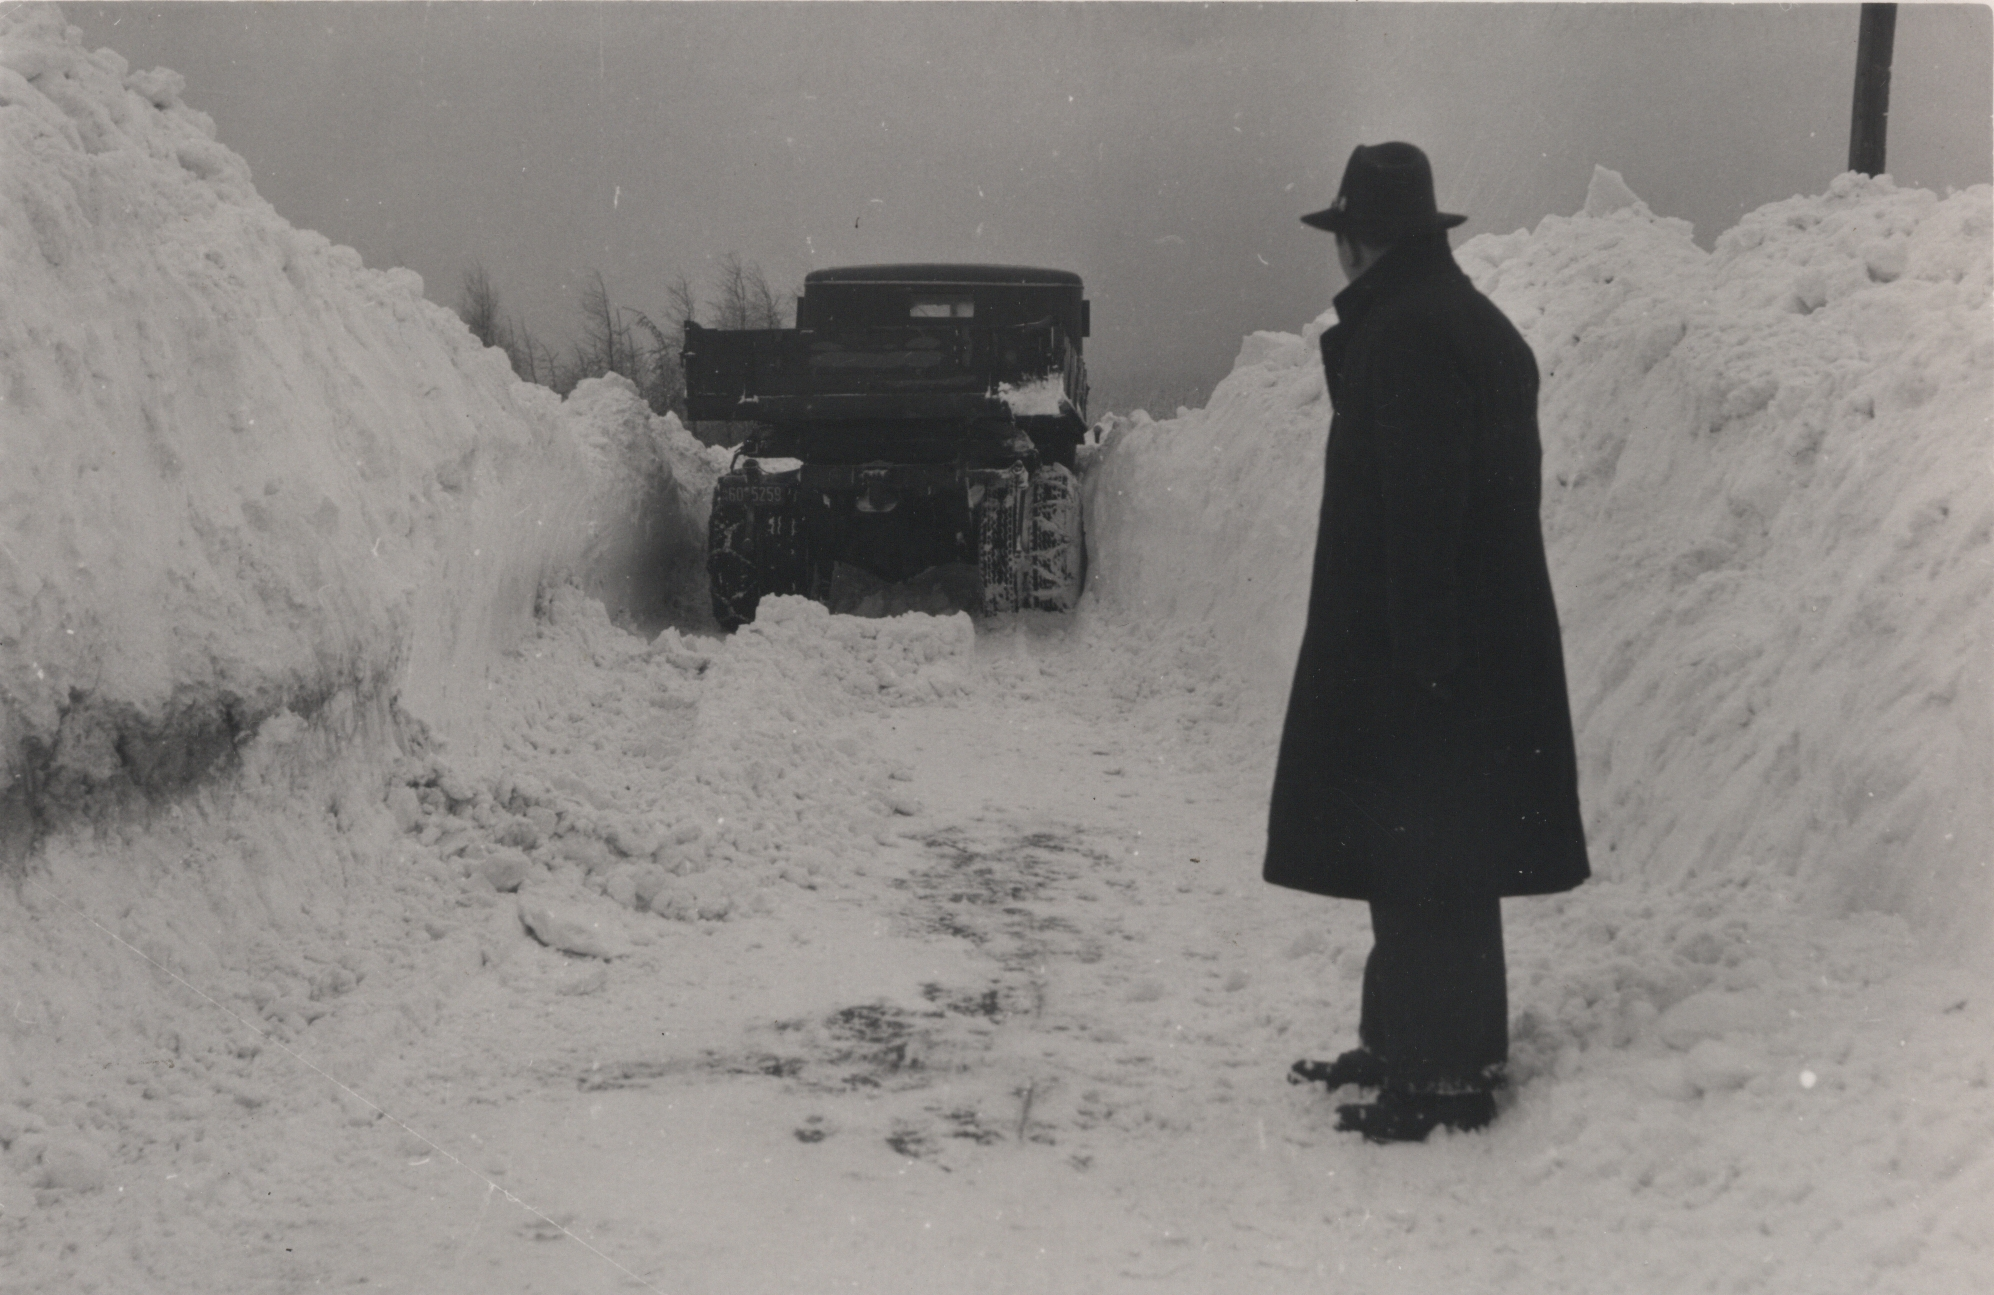 Winter 1953 in Oberreifenberg